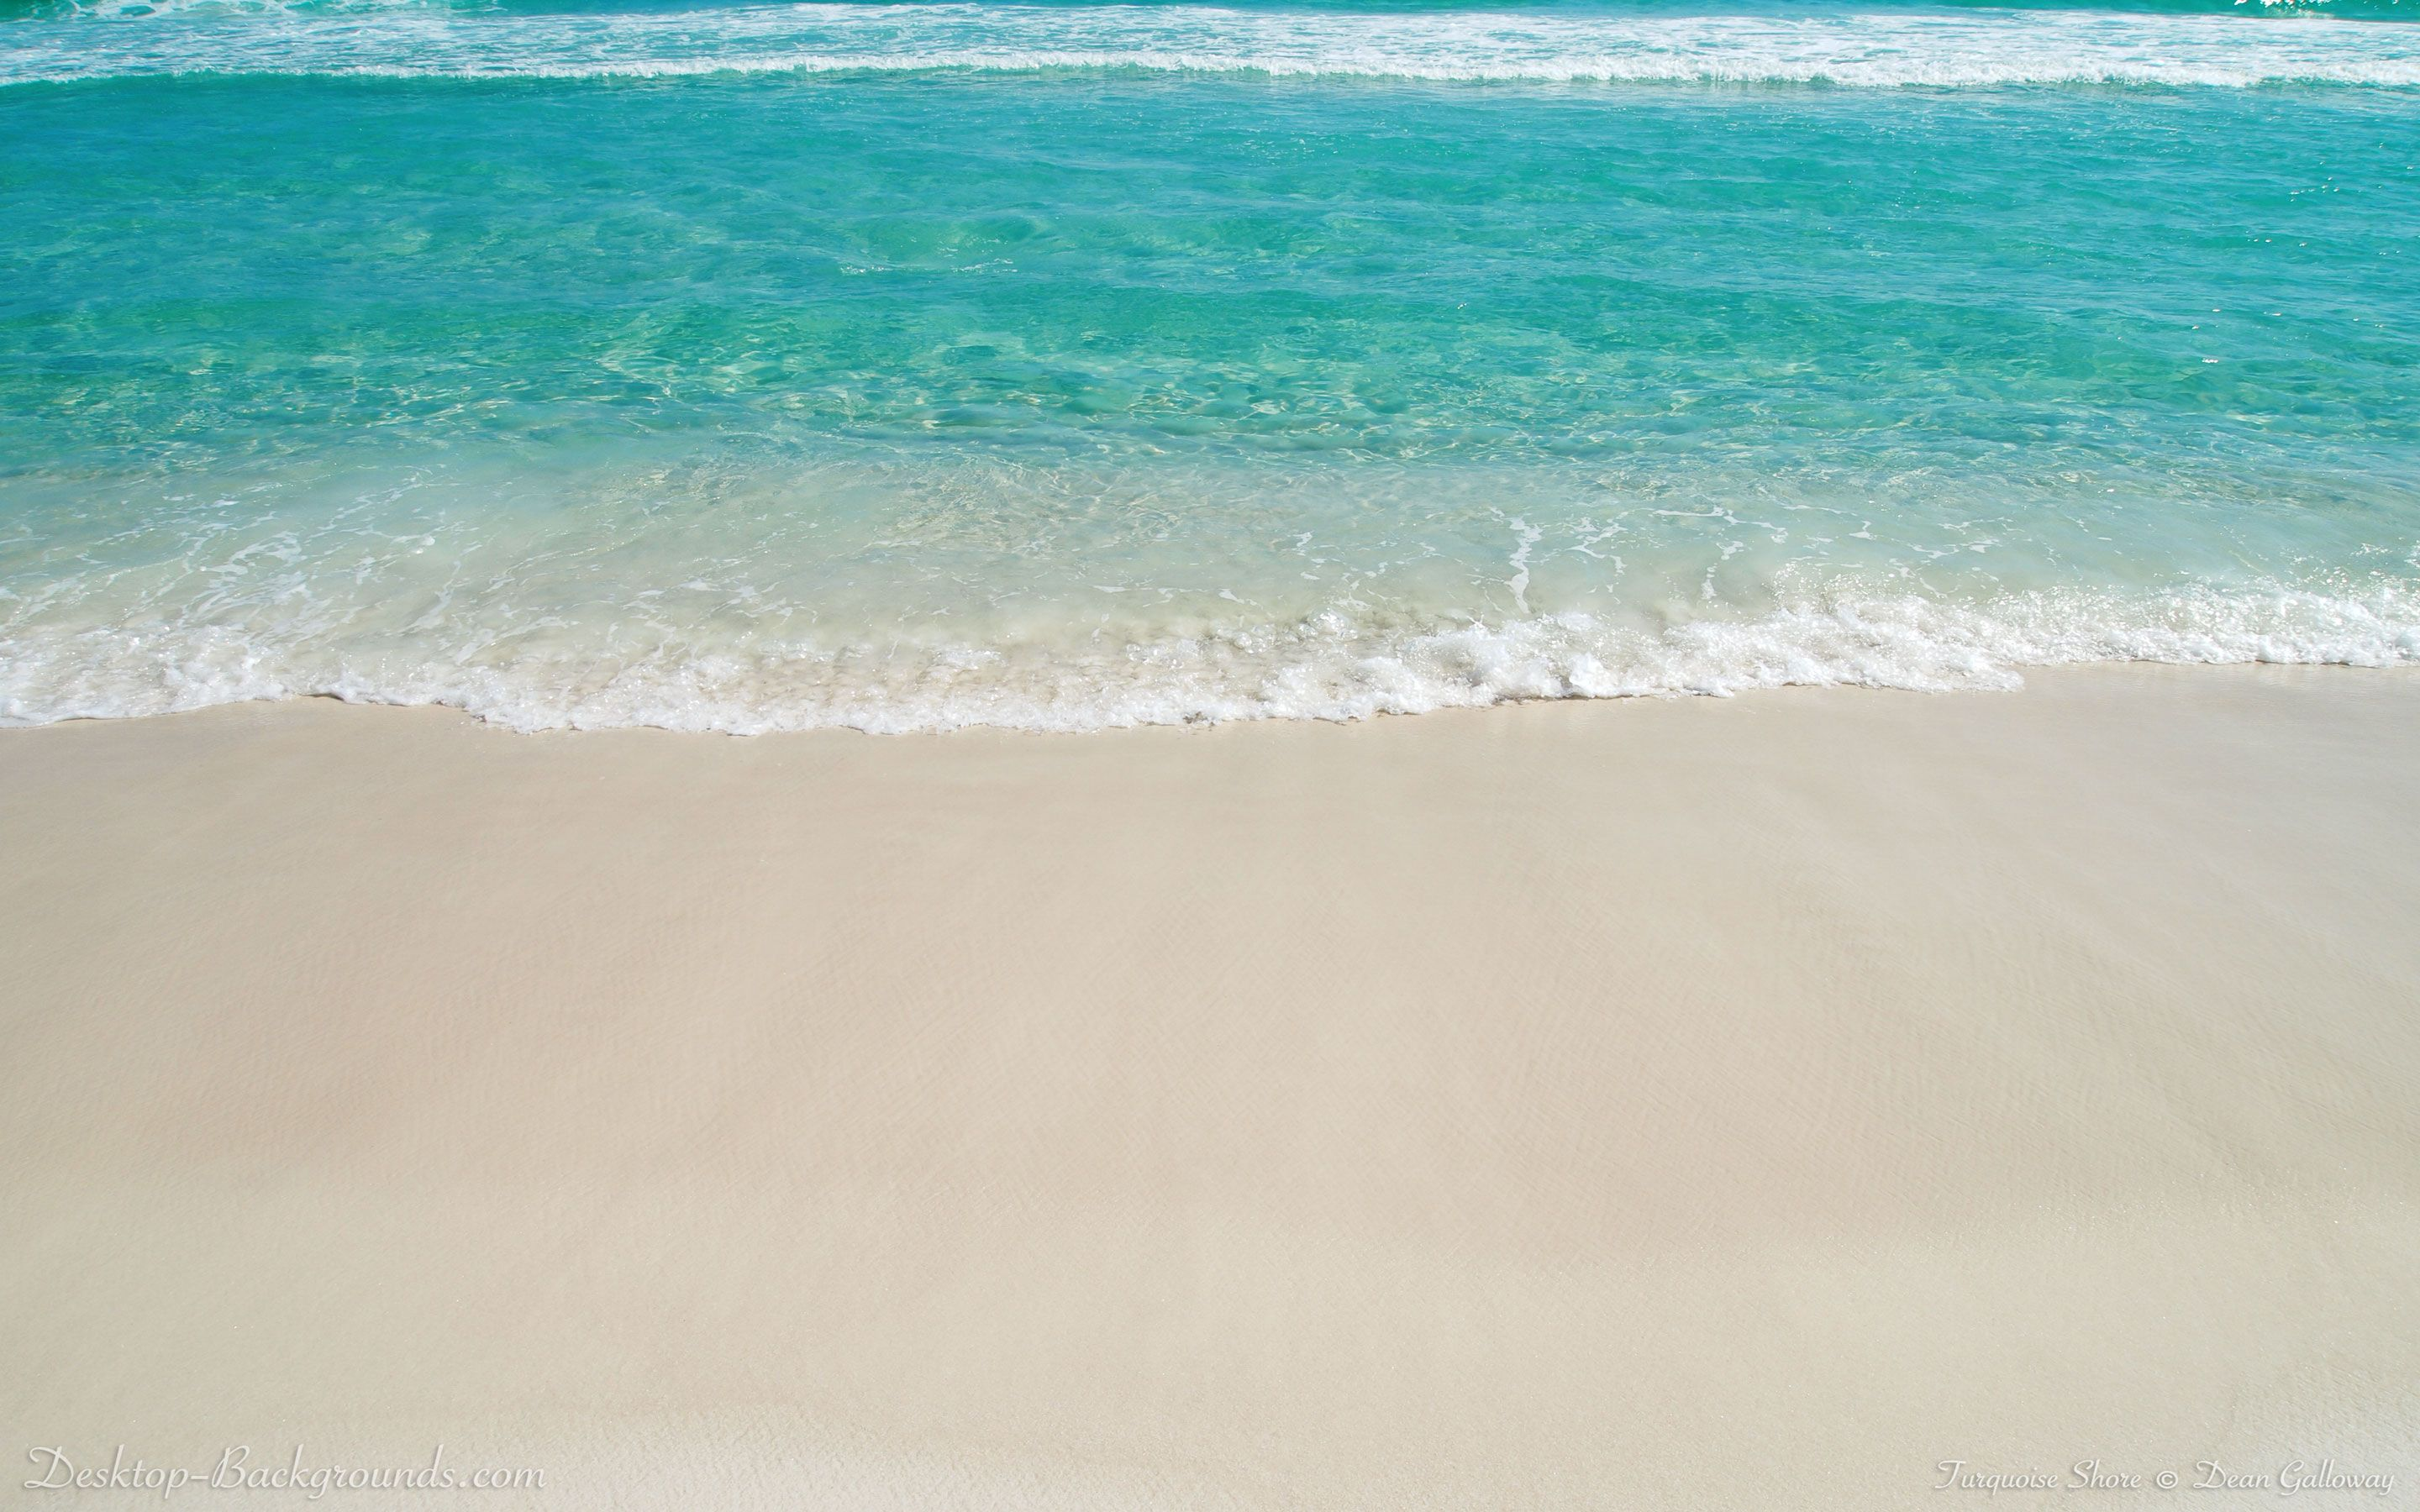 Florida's Emerald Coast ~ Turquoise Shore from Desktop ...